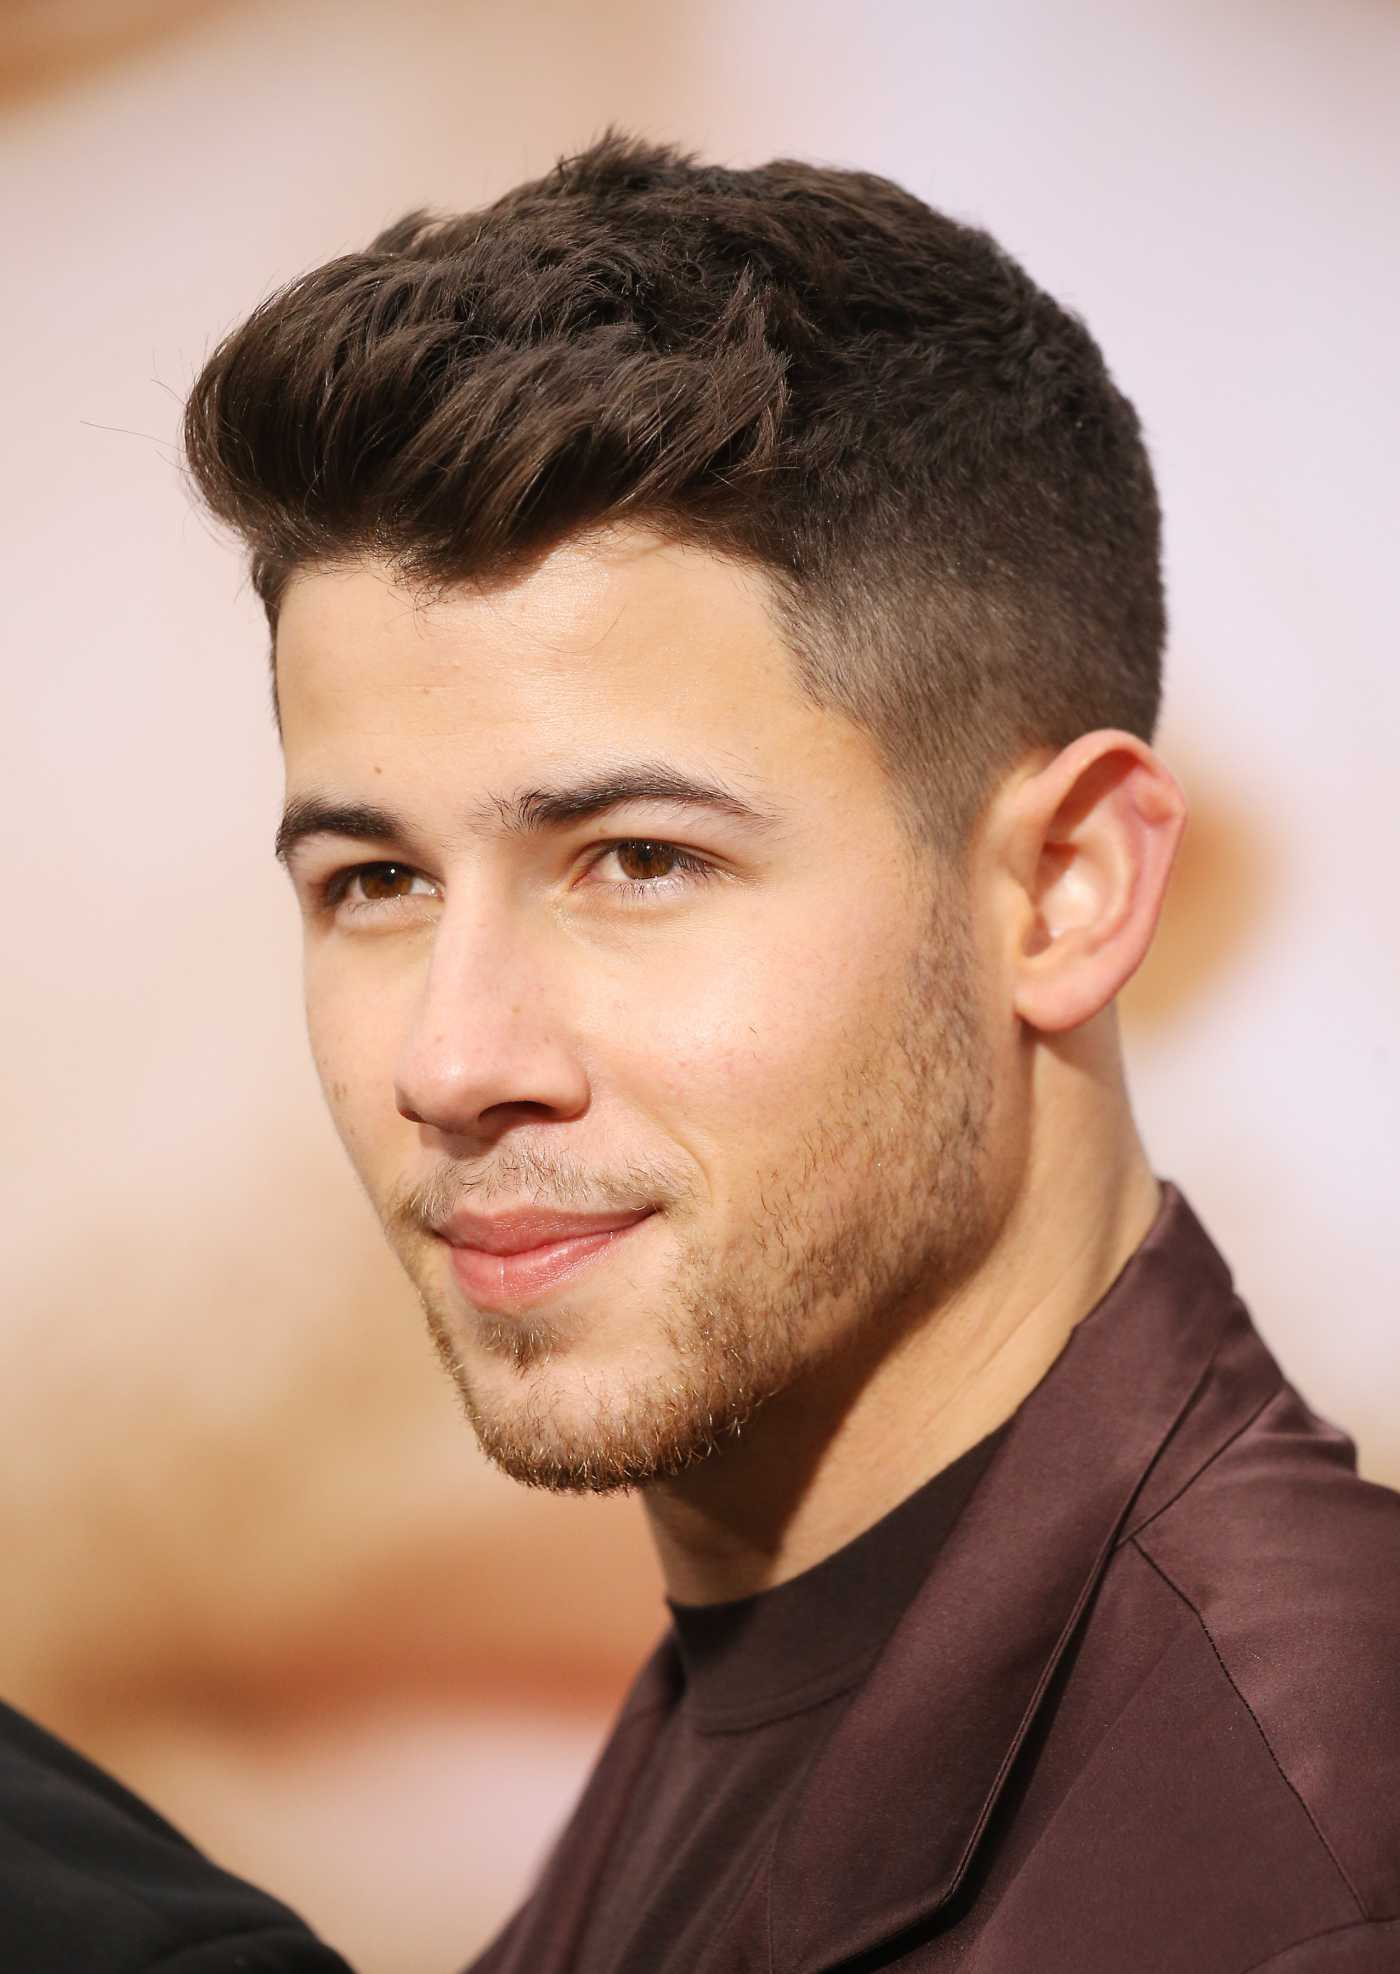 Nick Jonas Attends Amazon Prime Video's Chasing Happiness  Premiere with Priyanka Chopra in Los Angeles 06/03/2019